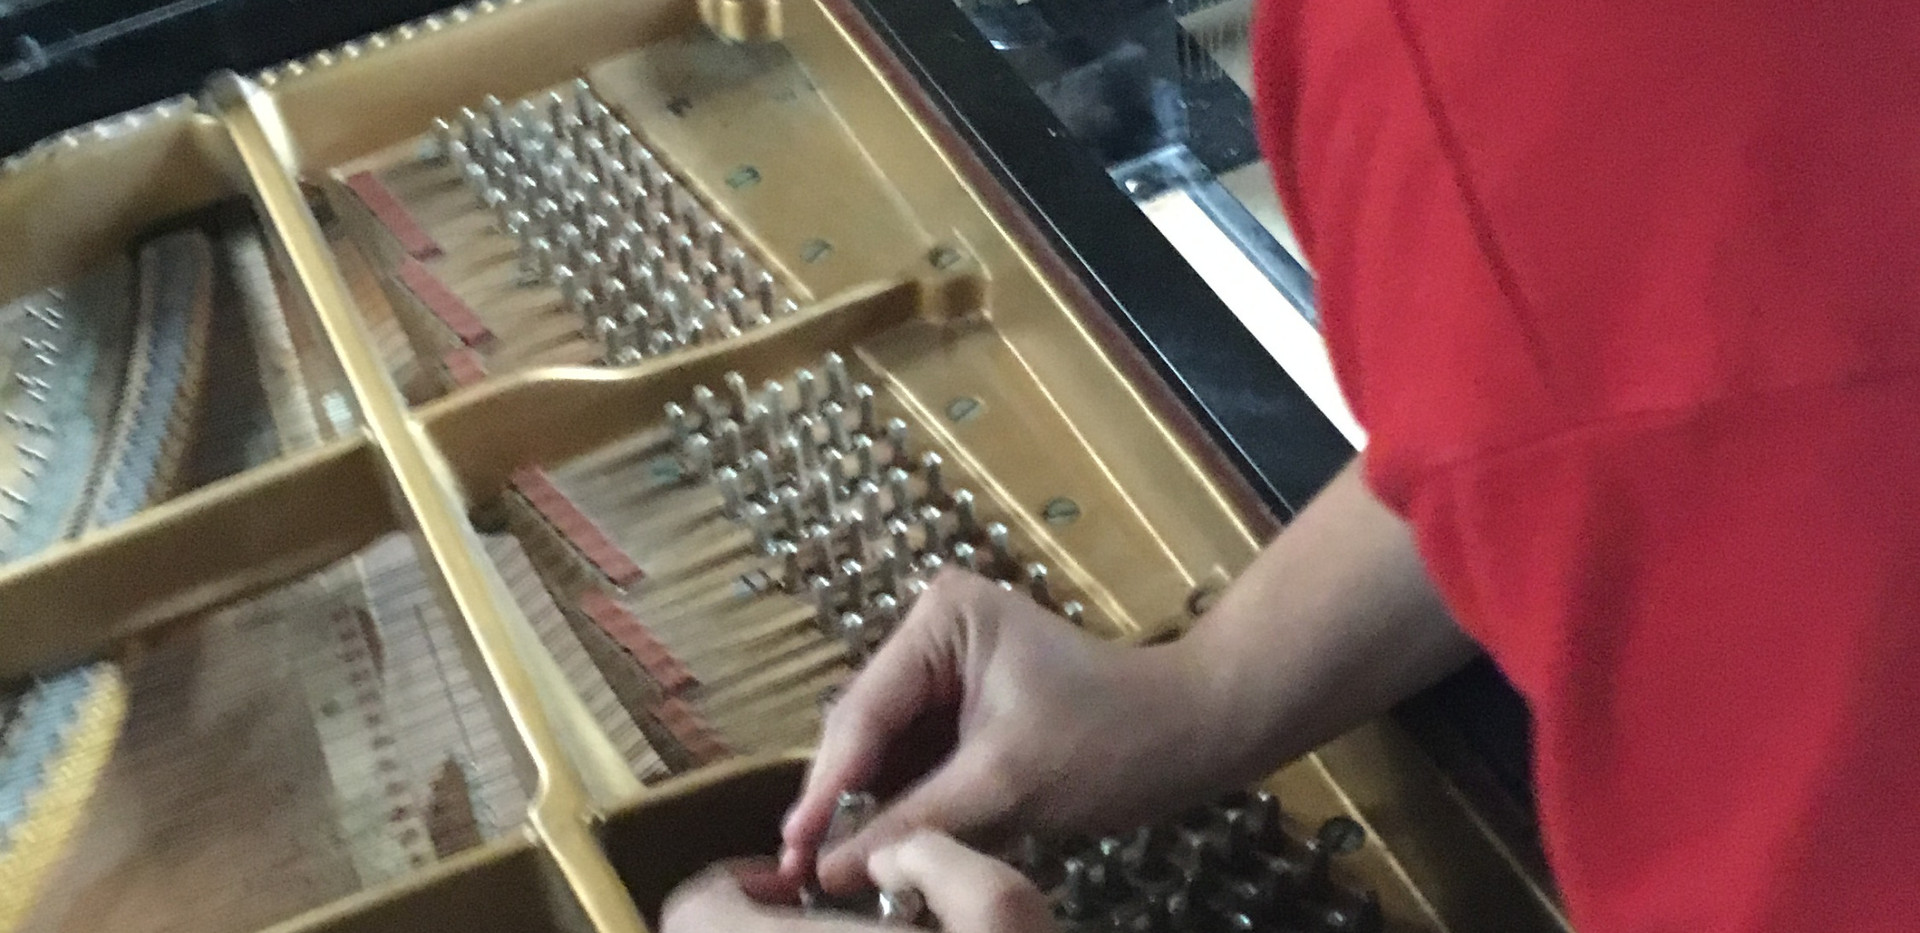 Beginning to Restring the Piano